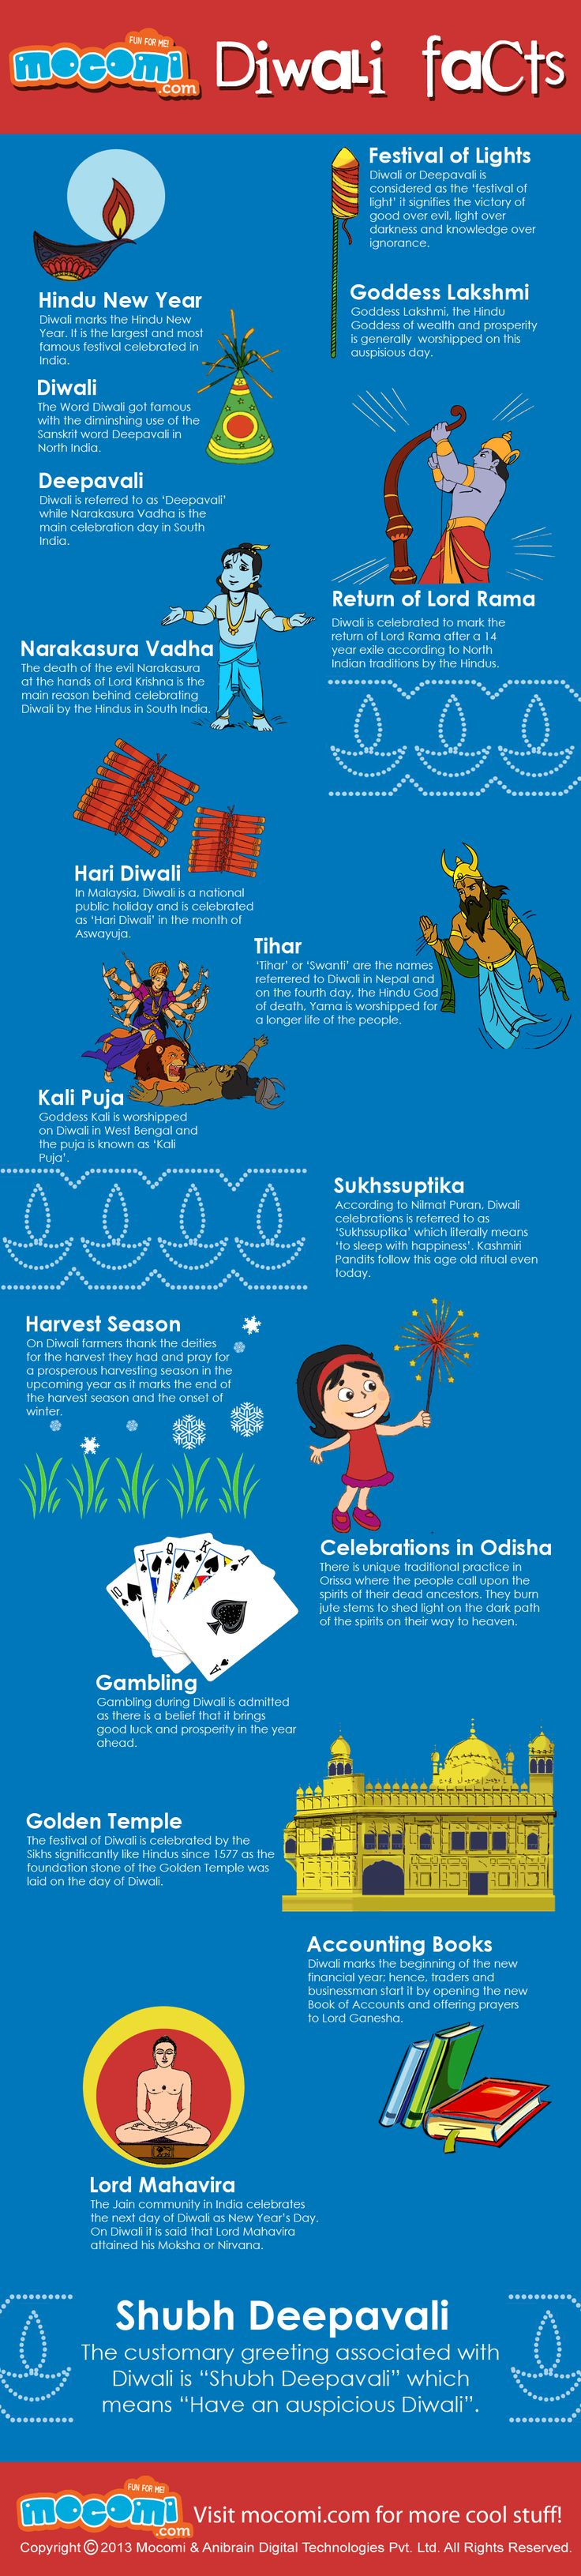 Some amazing facts about the Indian festival - Diwali. Diwali marks the Hindu new year. It is the largest and most celebrated festival in India.